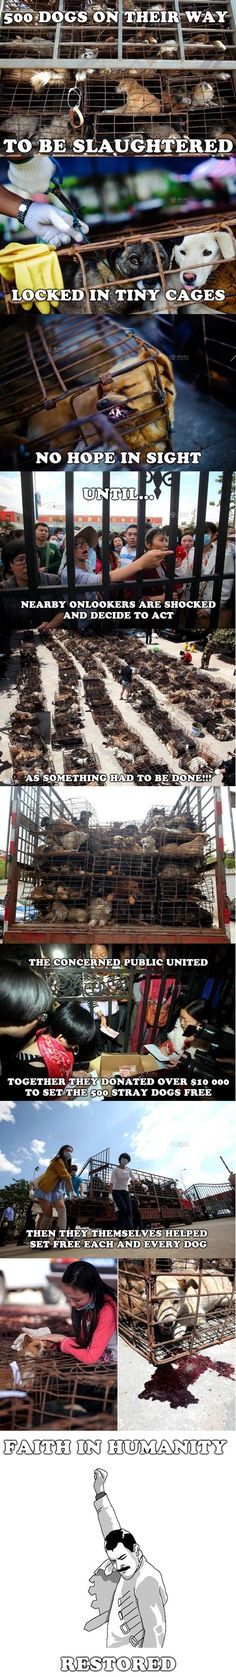 Faith in humanity restored! The Cat/dog meat festival in china and neighboring areas is SICK! Spread the word, sign petitions!